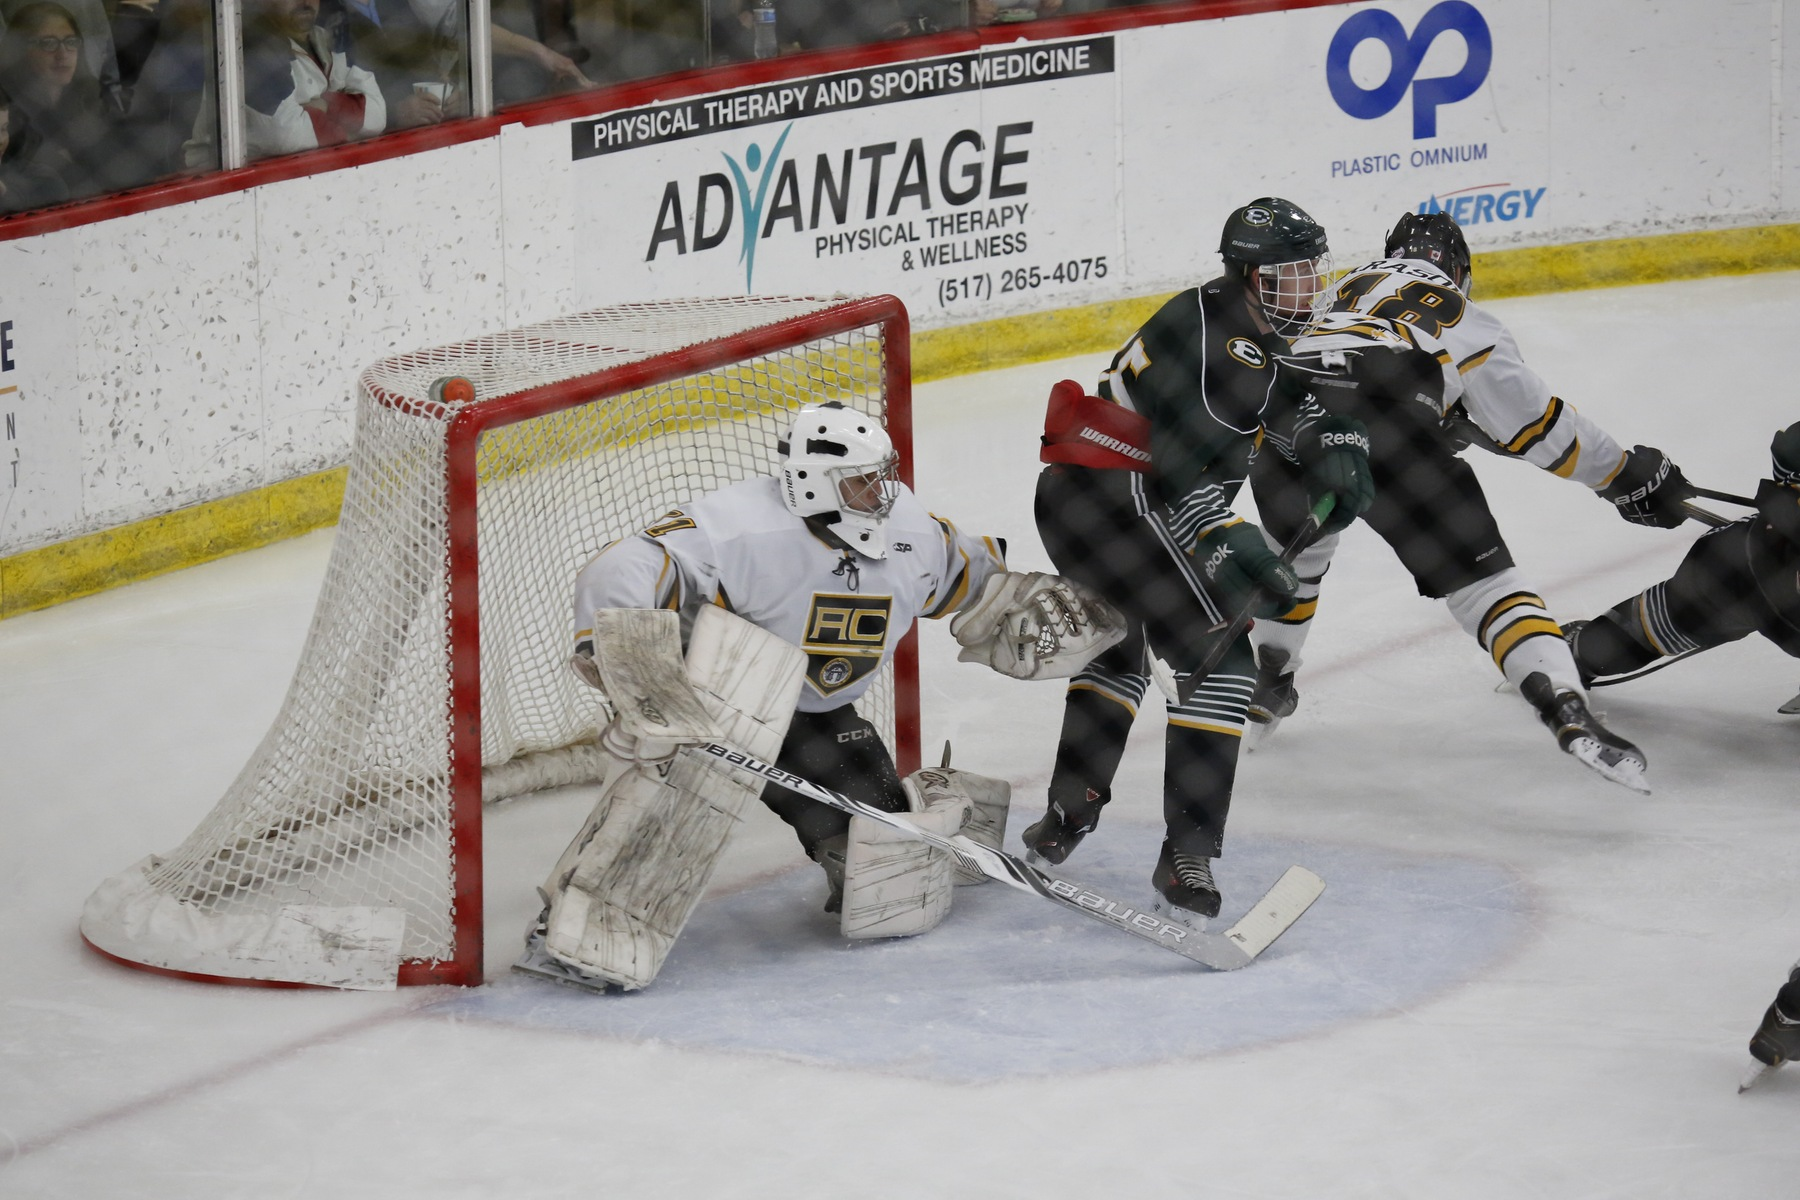 Adrian senior goalie Austyn Roudebush fights seeing through traffic in a game. (Photo: Bulldog SID archives)